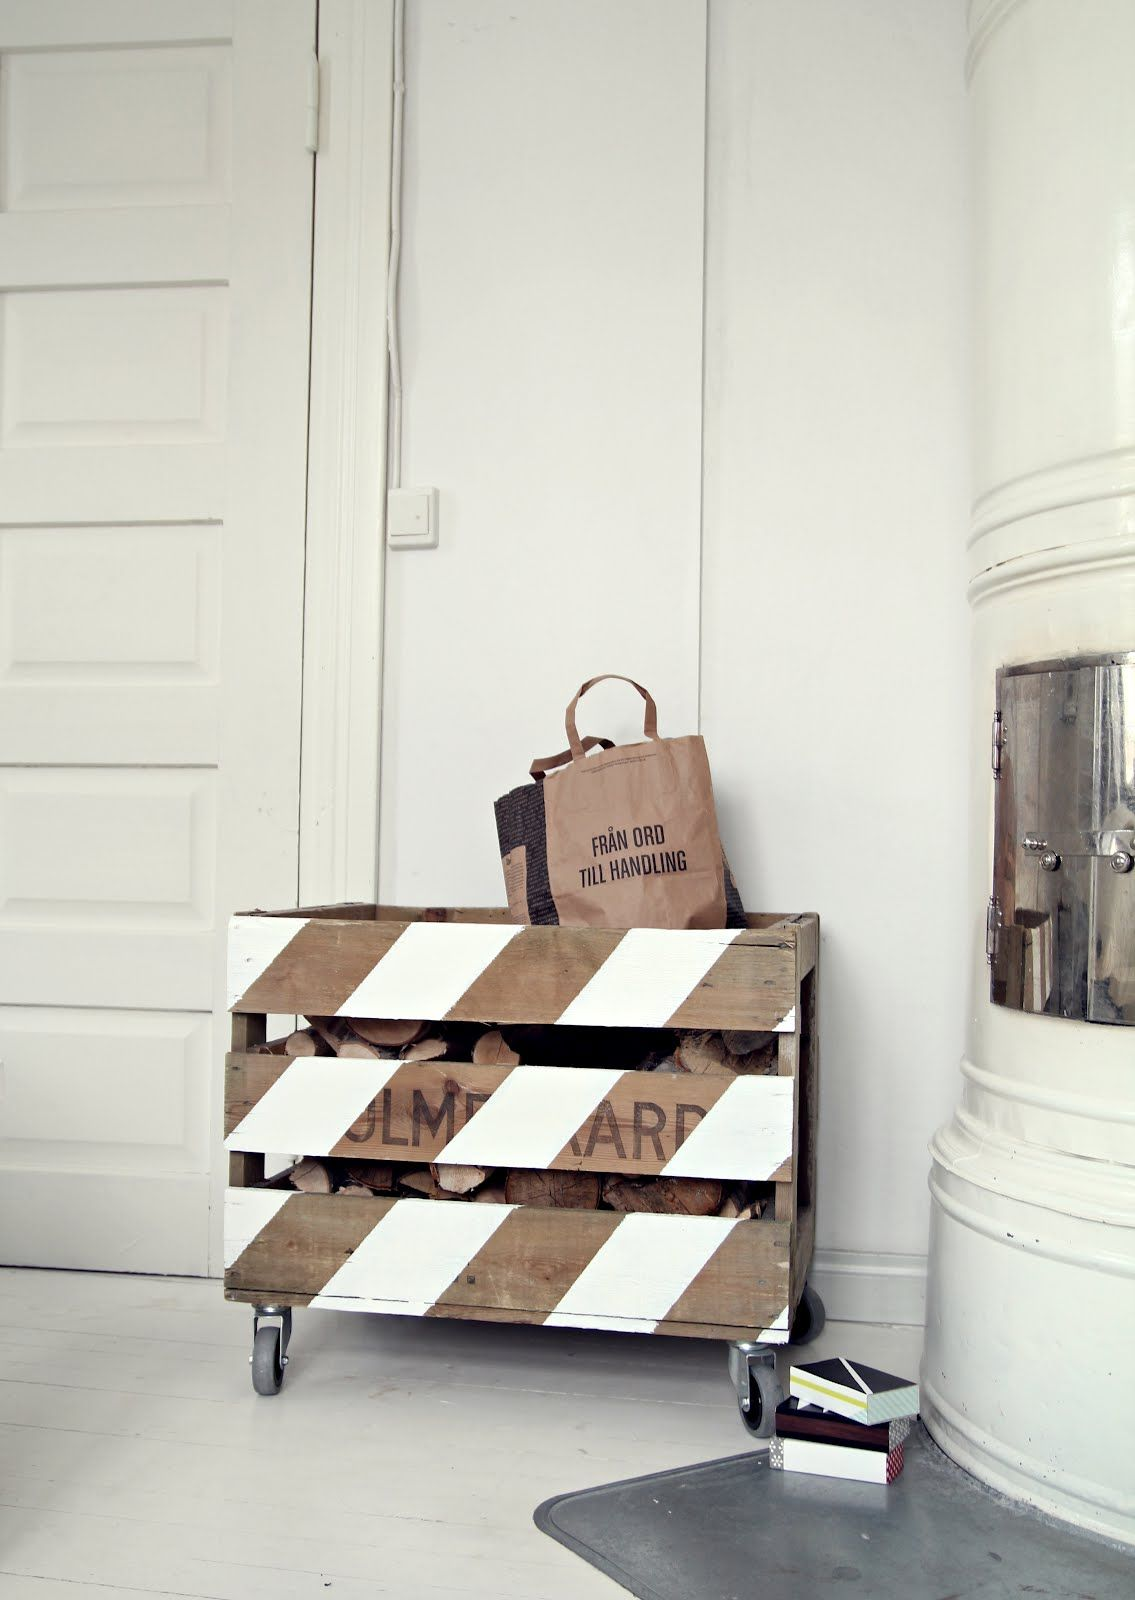 I have three of these crates on my balcony waiting to be painted! Might just do this :)